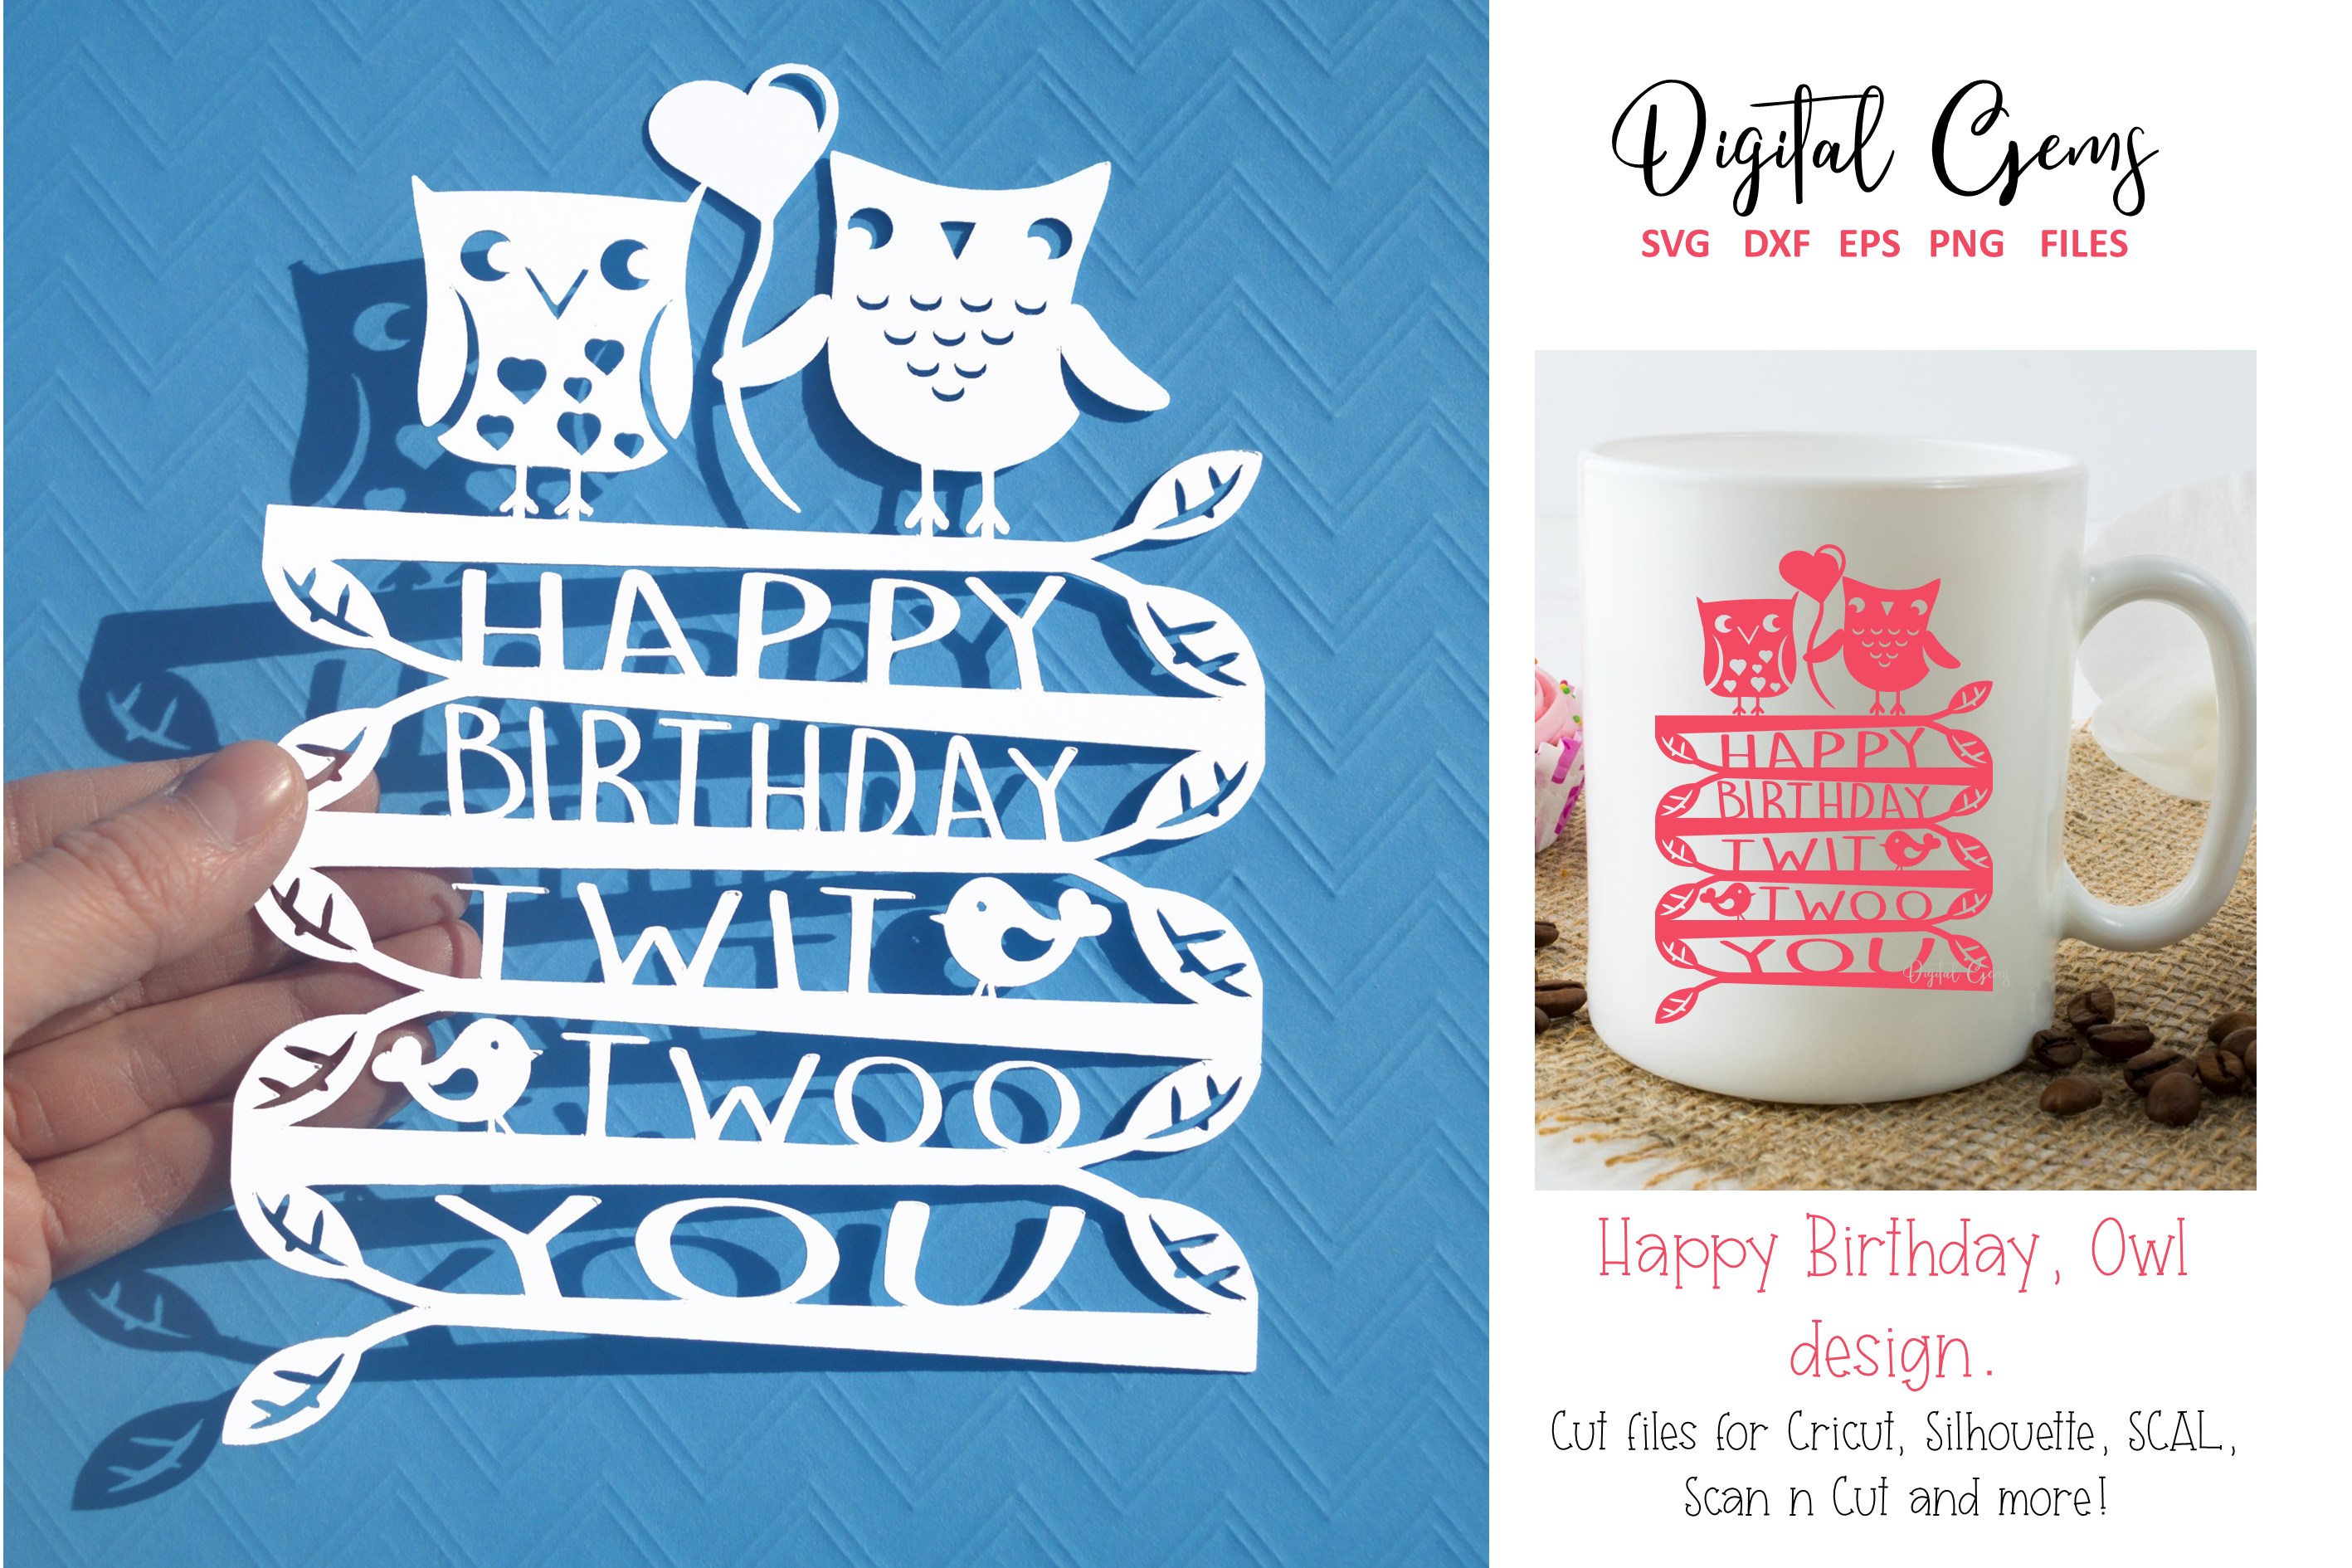 Download Free Happy Birthday Papercut Design Graphic By Digital Gems for Cricut Explore, Silhouette and other cutting machines.